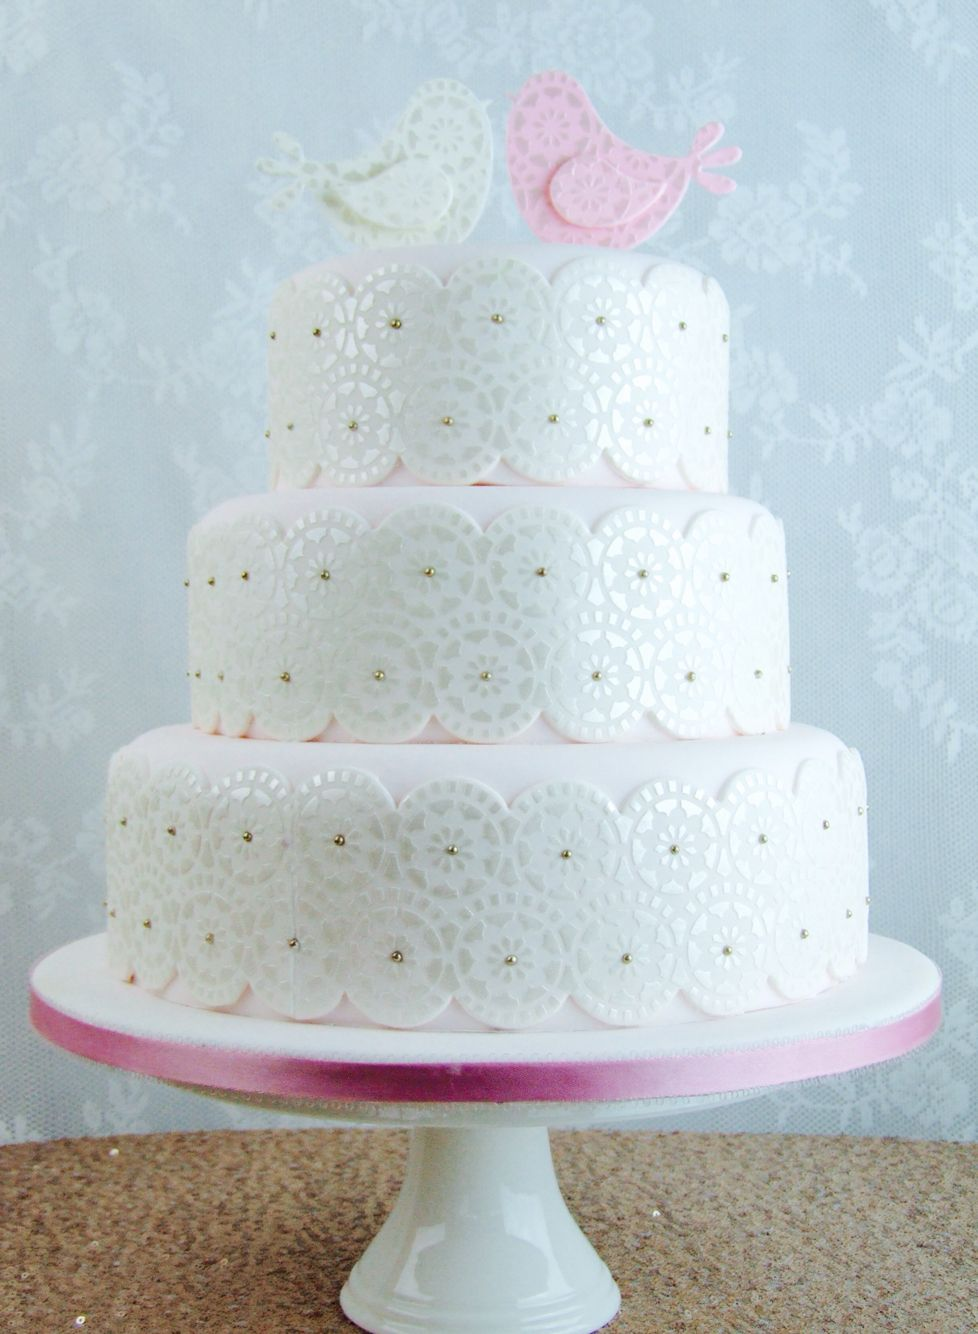 Wedding cake using quirky bird cutters as cake toppers http://www ...